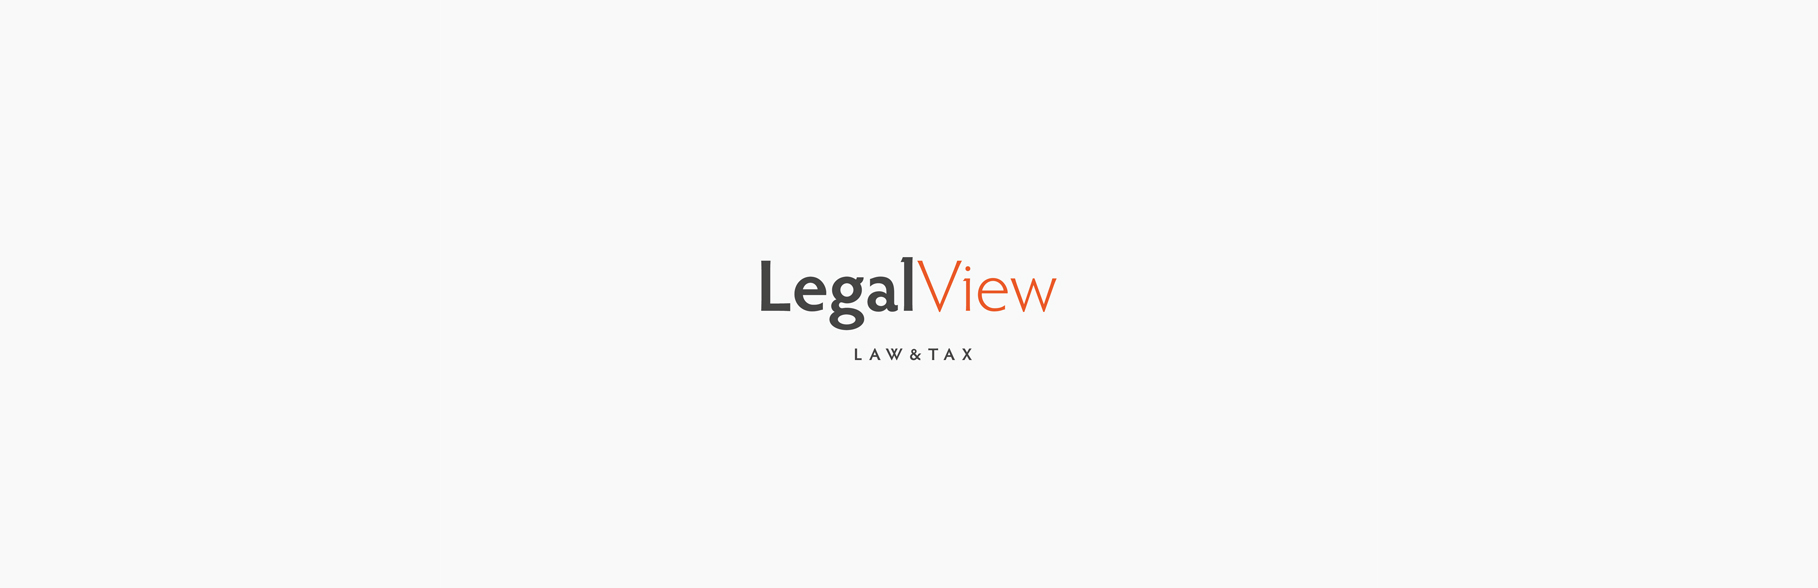 Legal View